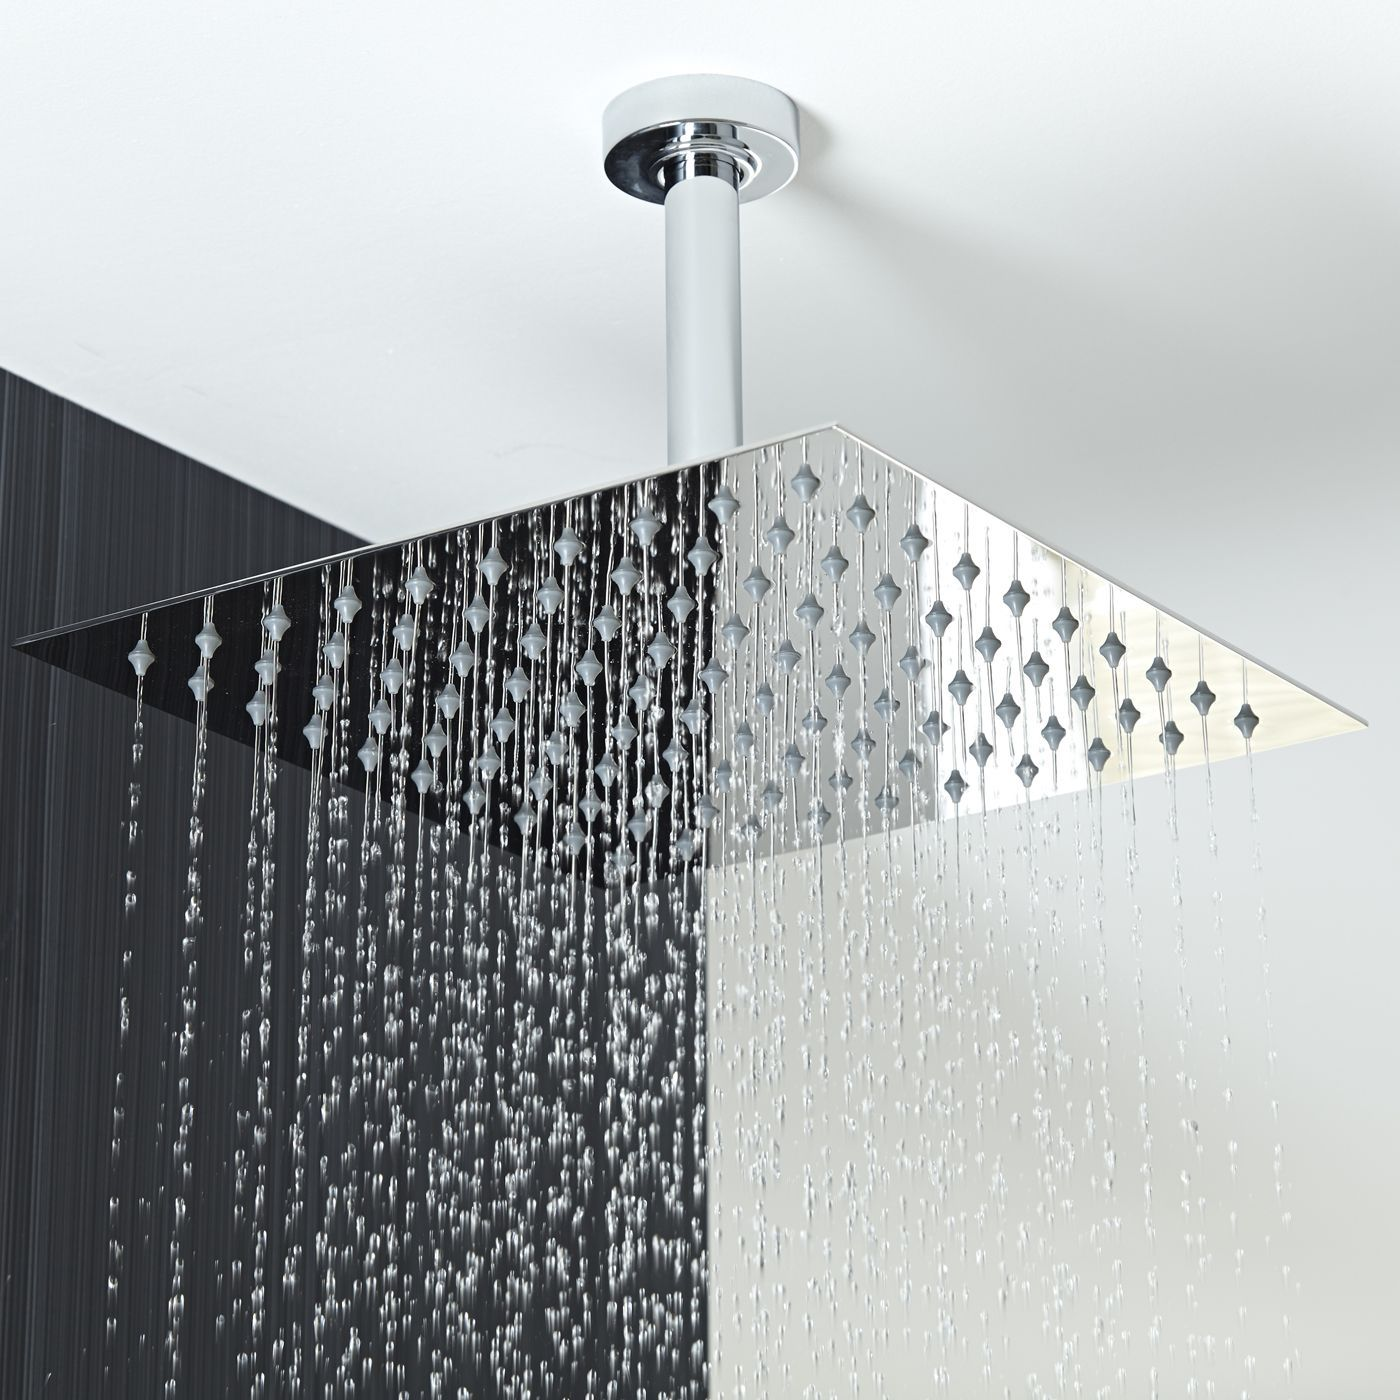 12 Square Shower Head With Round